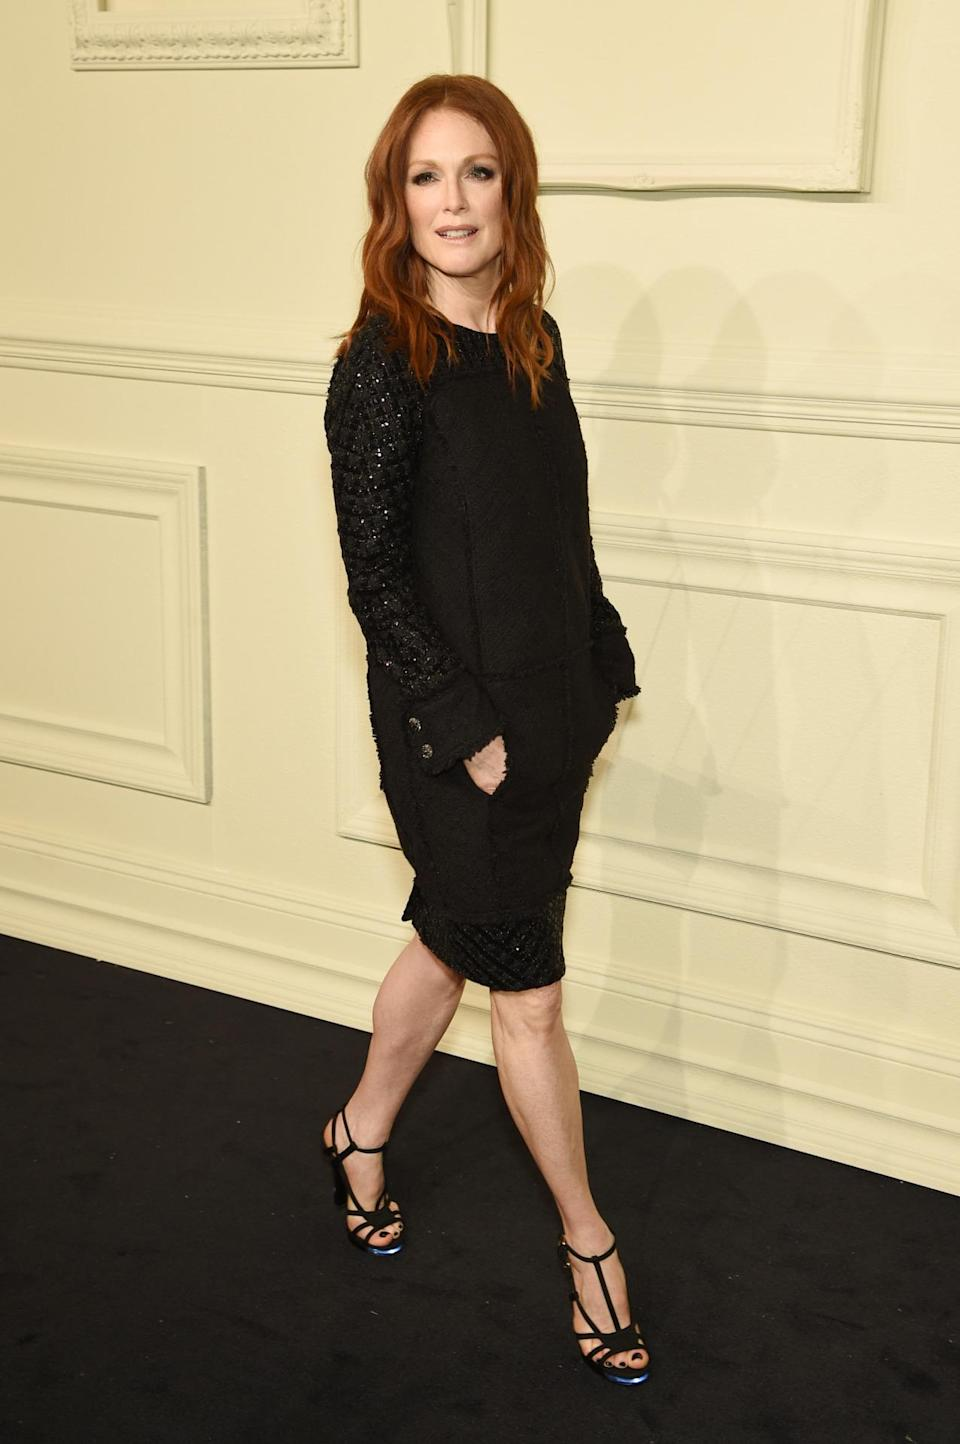 <p>The Oscar-winning actress looked utterly chic in a black knit dress which she accessorized with shoes that lit up as she walked.</p>